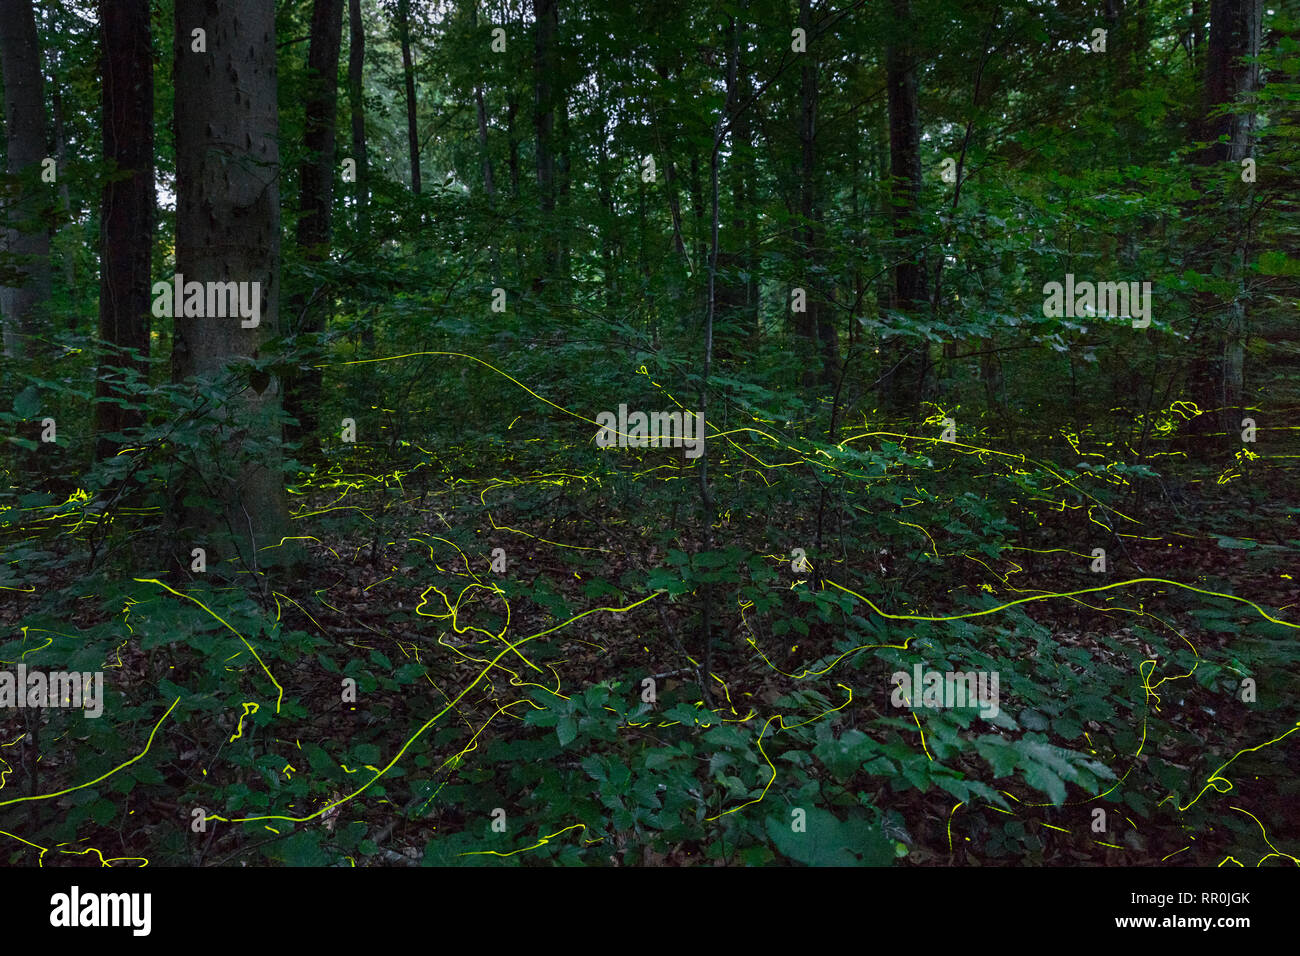 zoology / animals, insects (Insecta), firefly (Lampyridae), in the forest, Schaffhausen, Switzerland, Additional-Rights-Clearance-Info-Not-Available Stock Photo